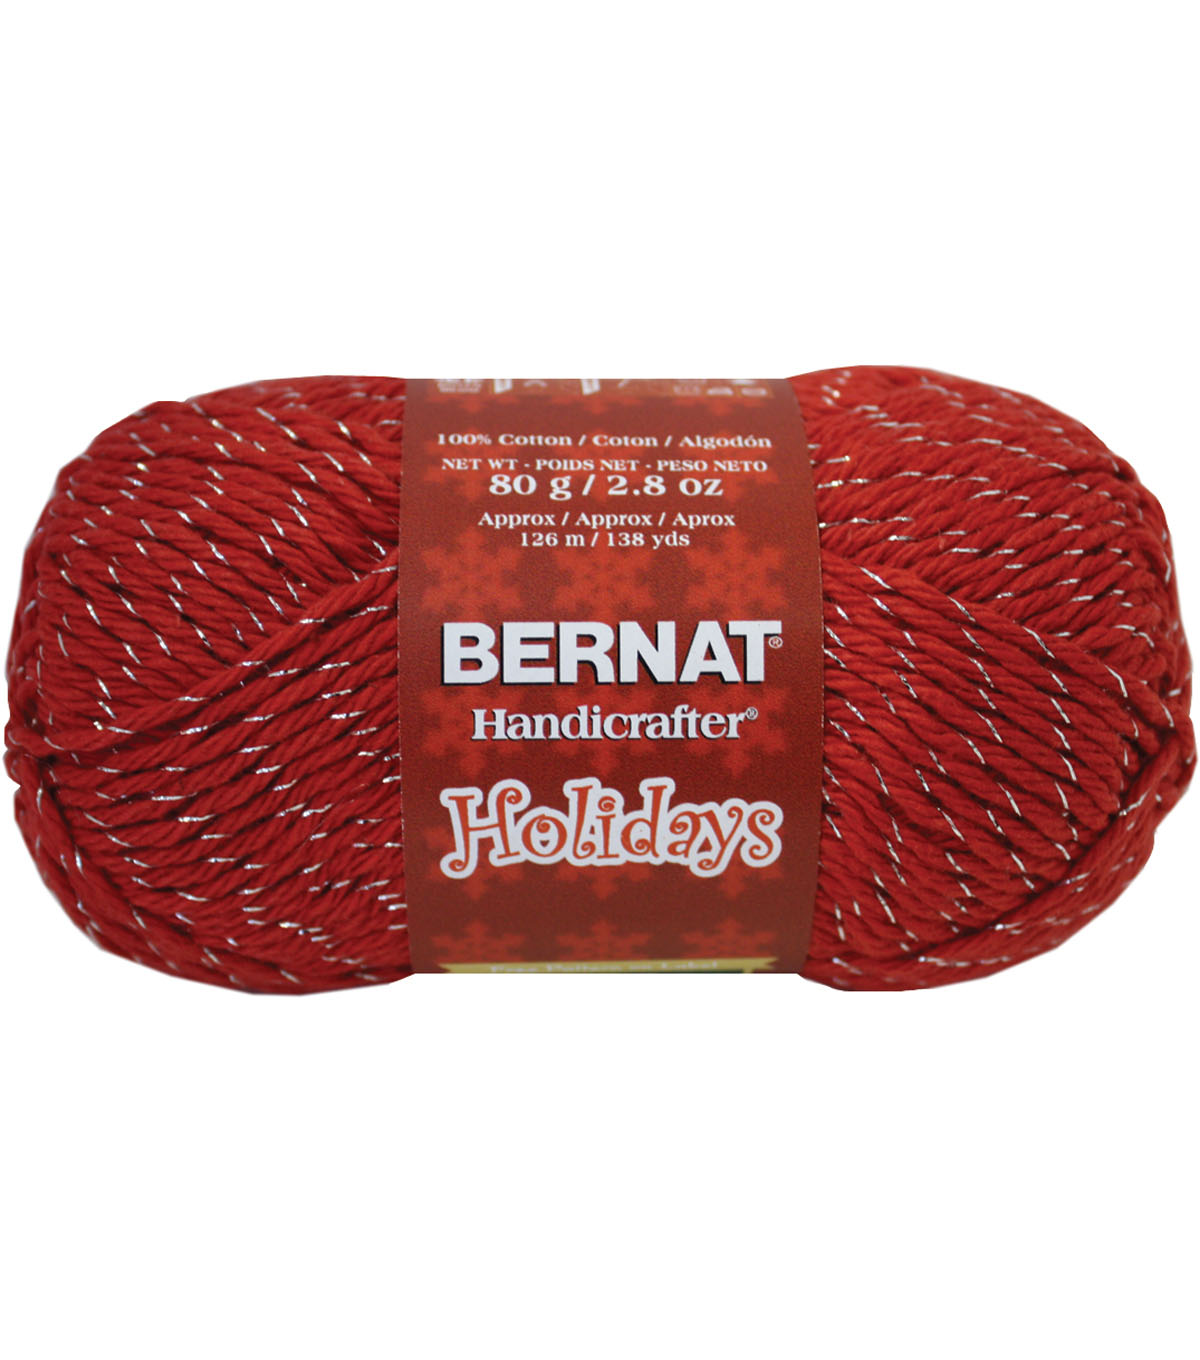 Bernat Handicrafter Cotton Ultrasoft Yarn-Holiday